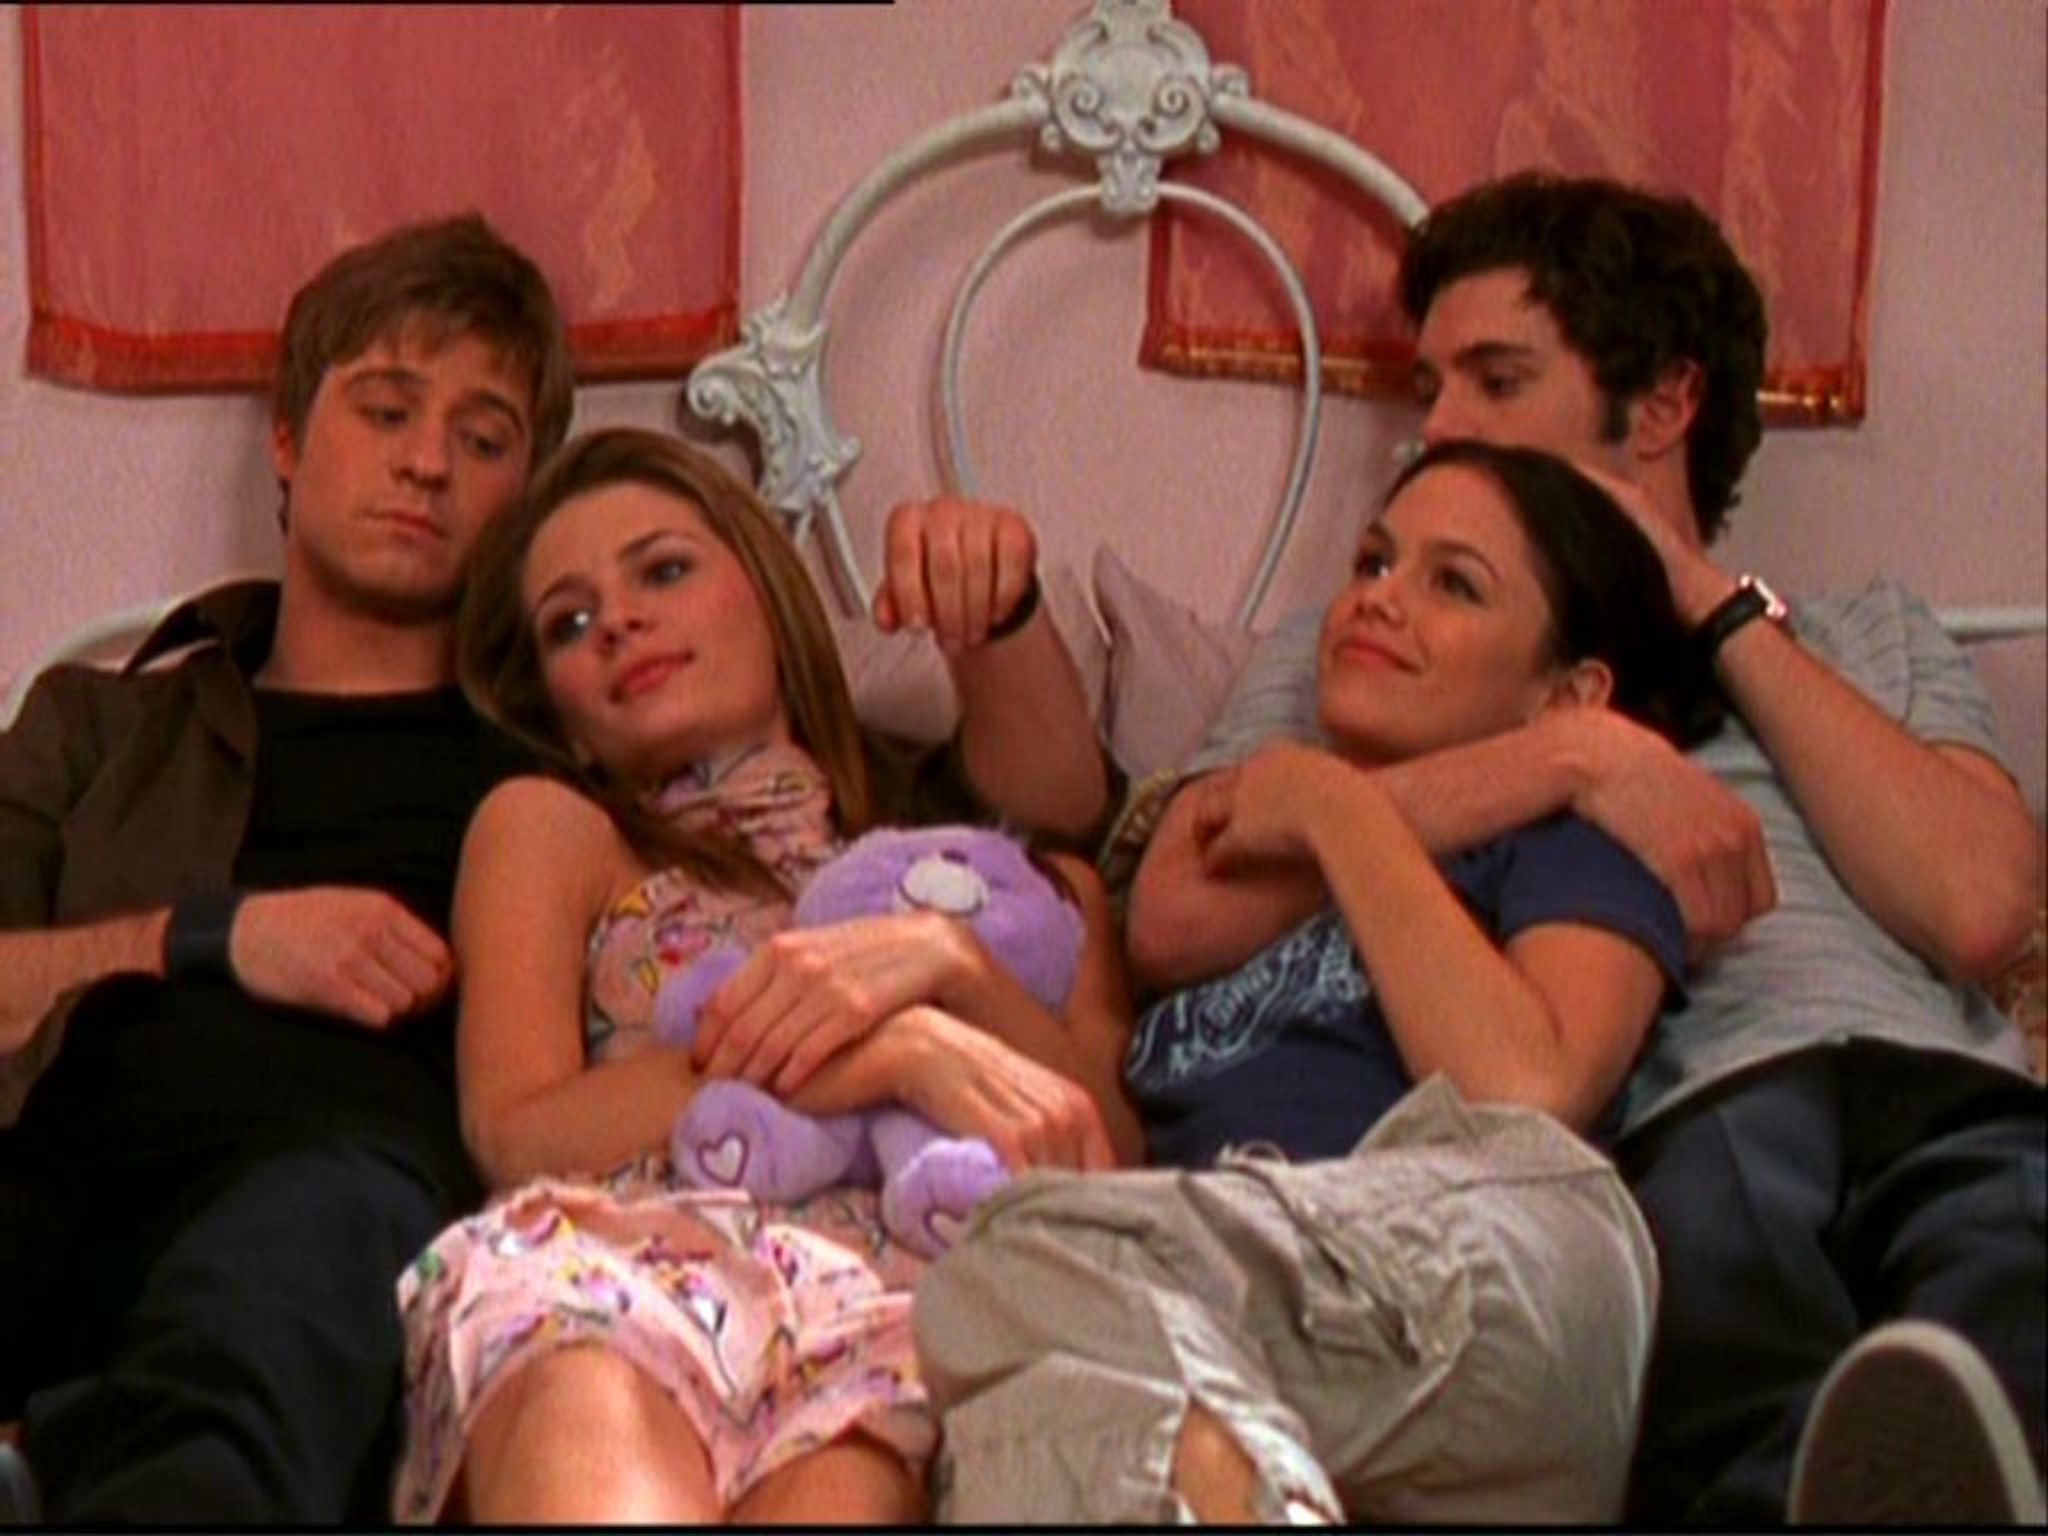 The O.C. Party